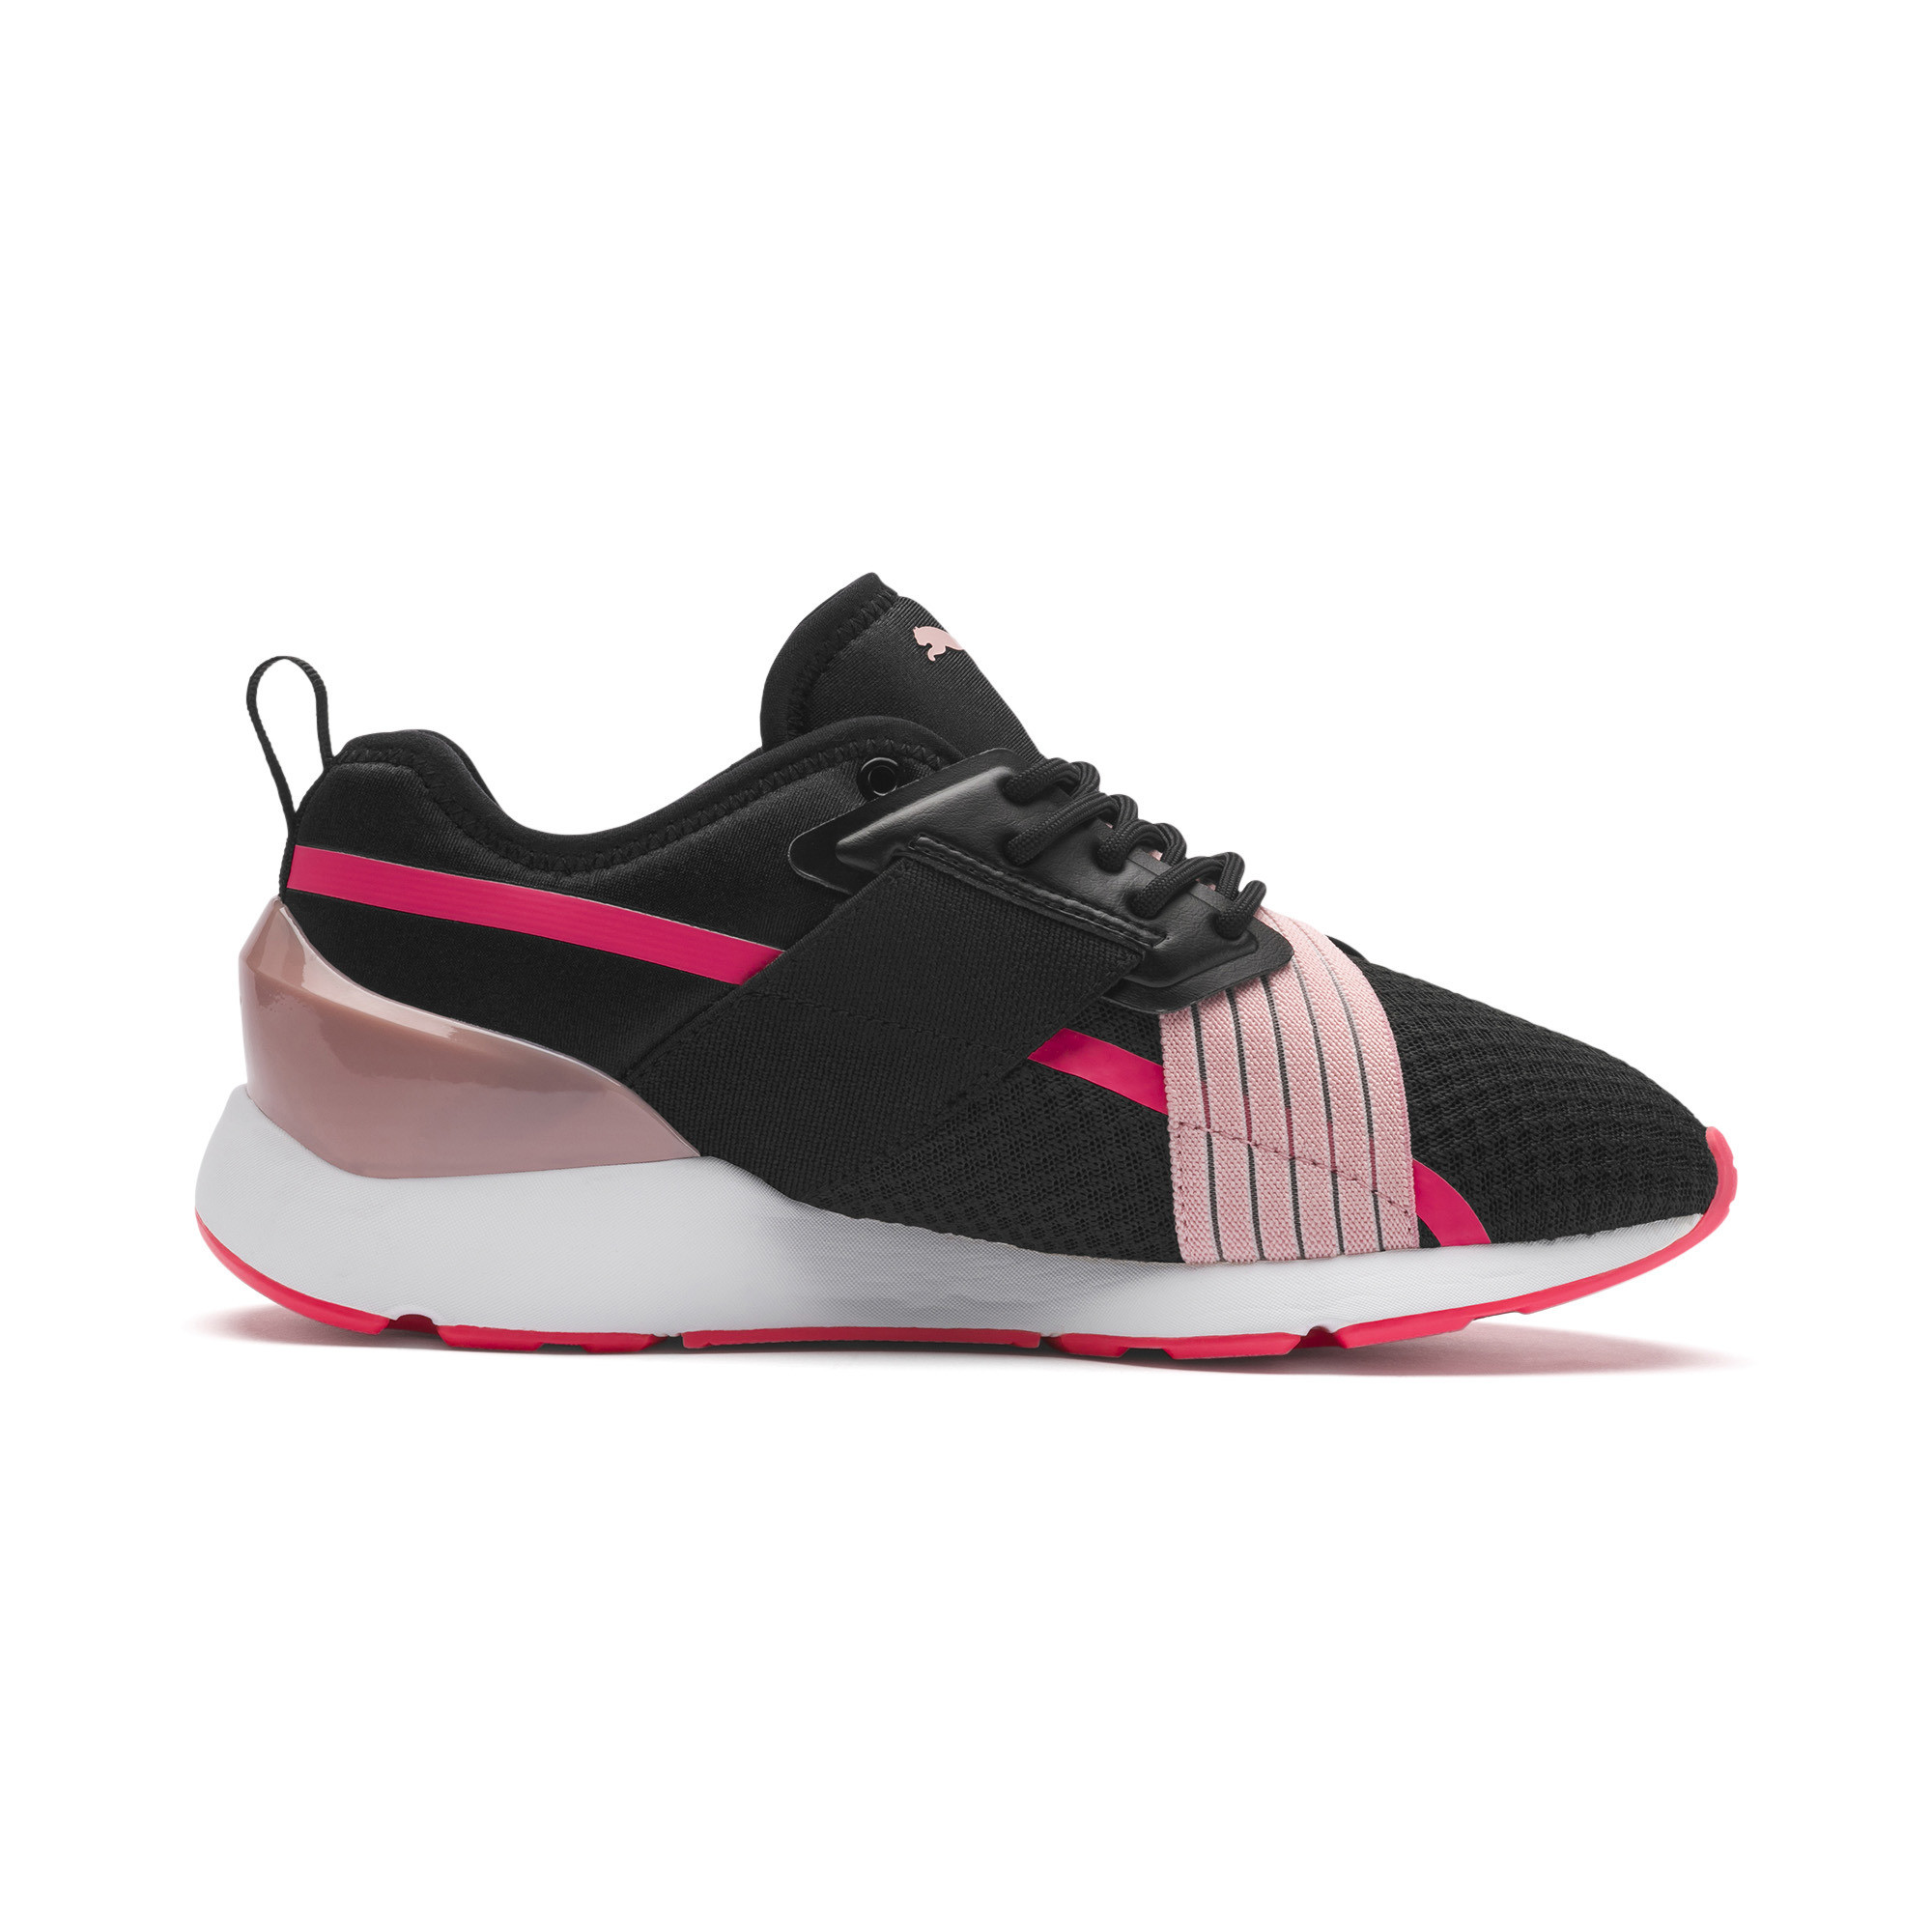 PUMA-Women-039-s-Muse-X-2-Sneakers thumbnail 20